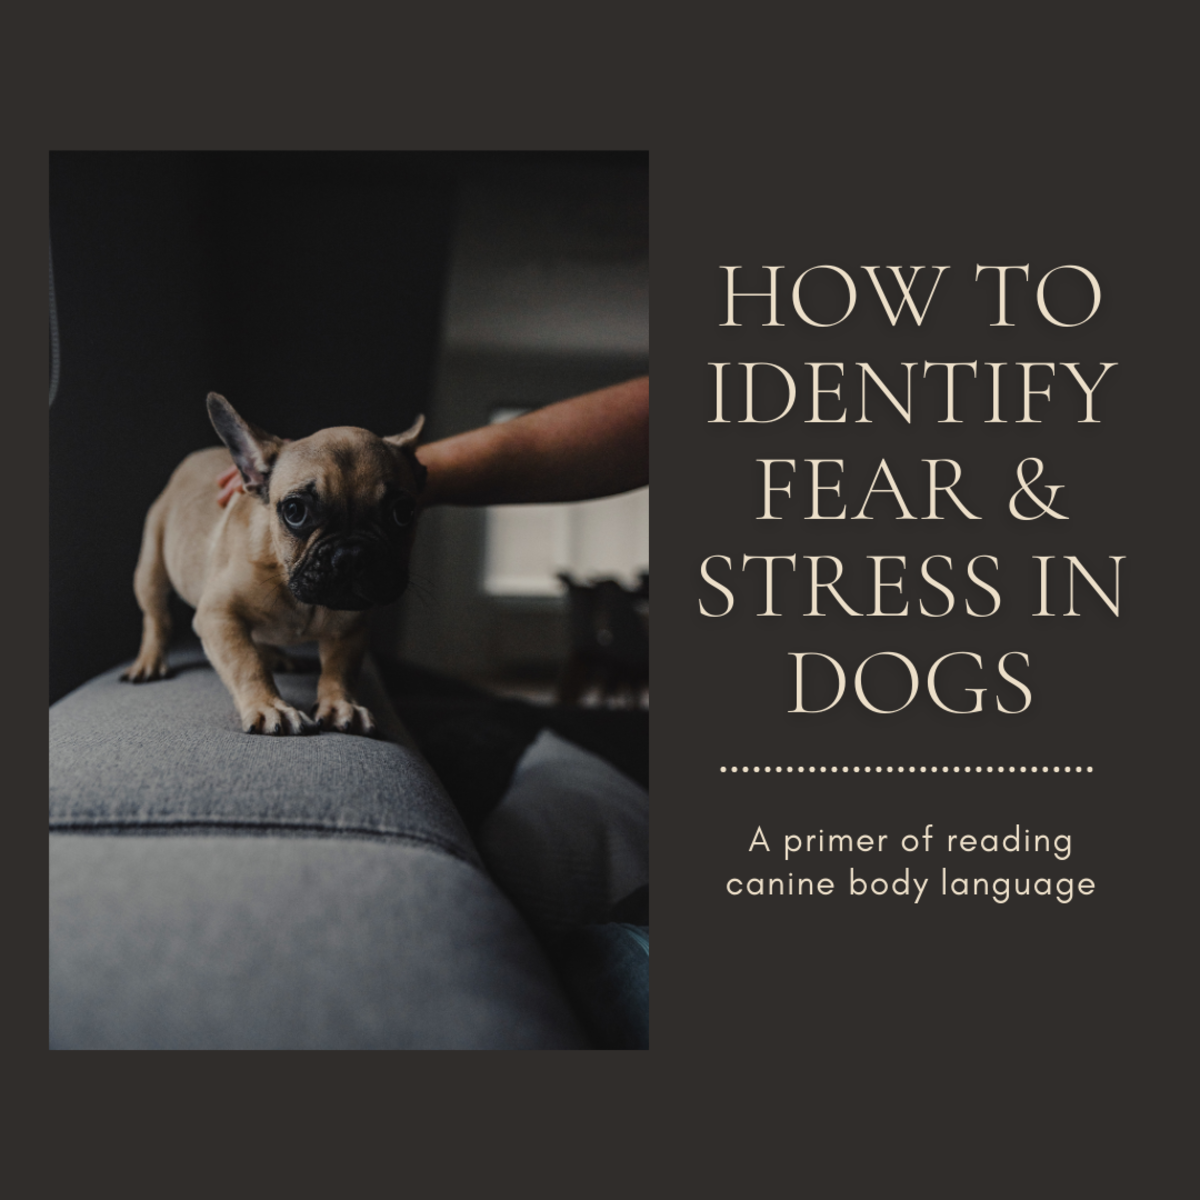 This article will provide information on how to read canine body language to help determine if a dog is scared or stressed.